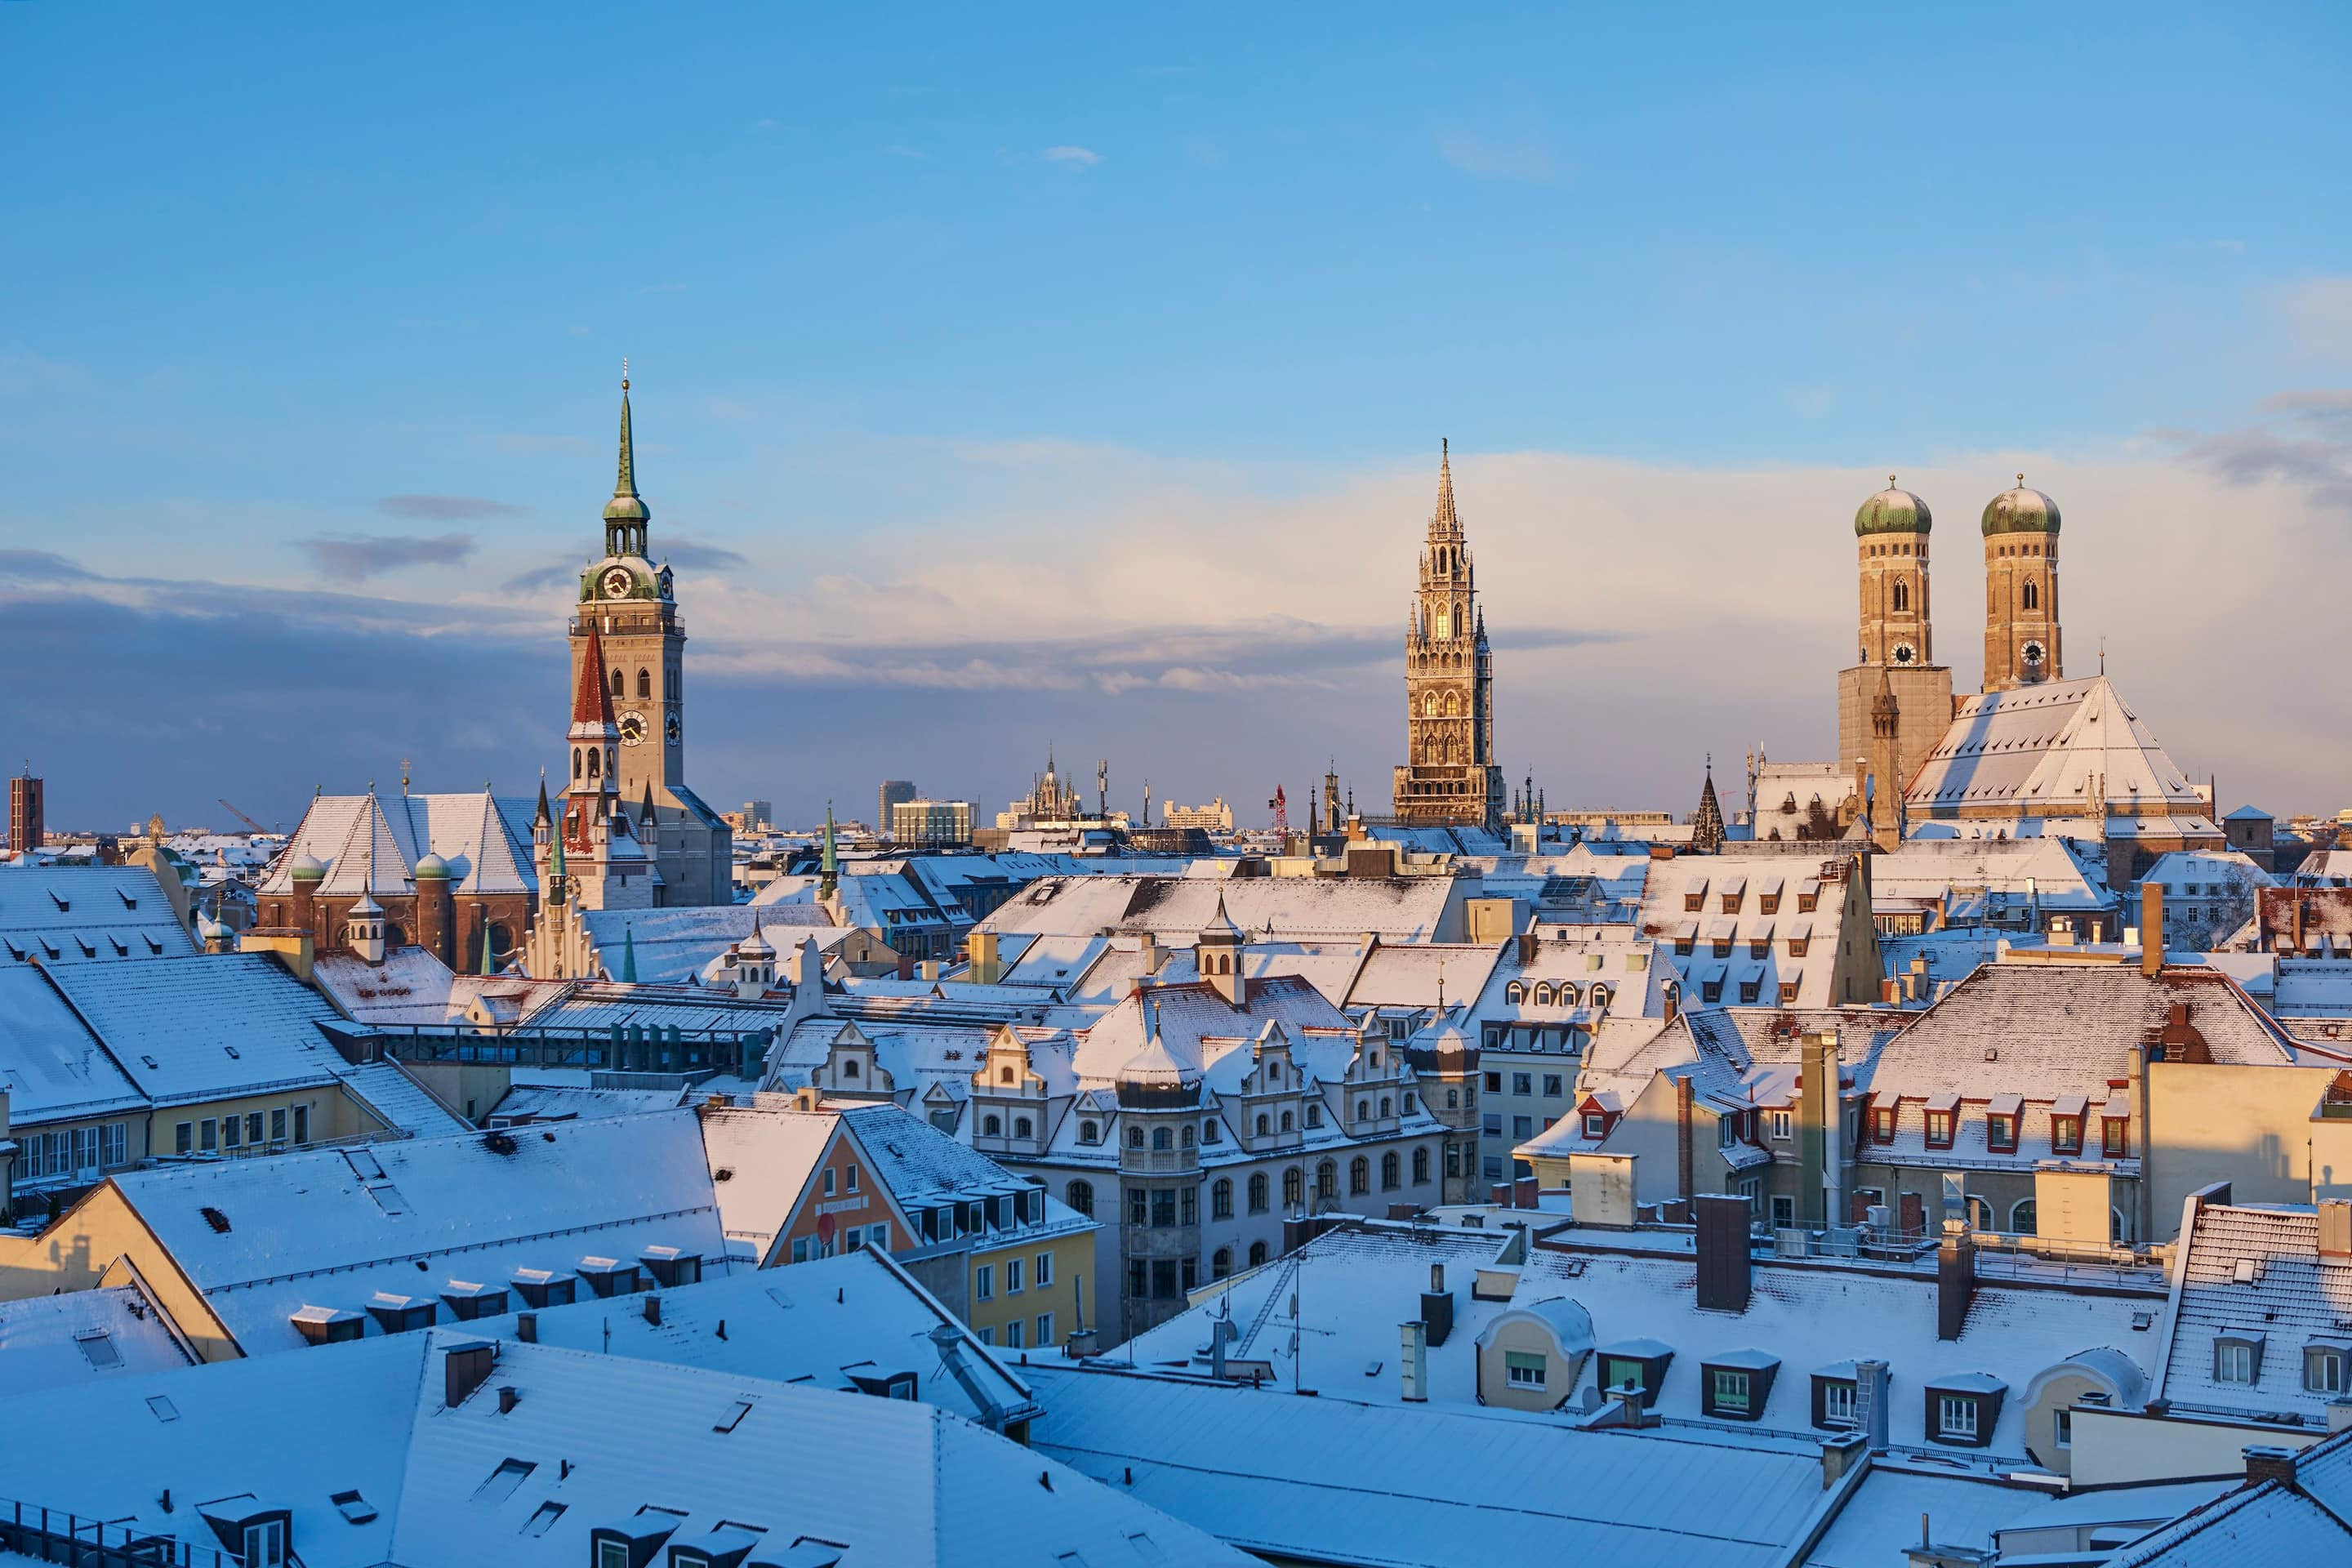 View of snow on rooftops over Munich